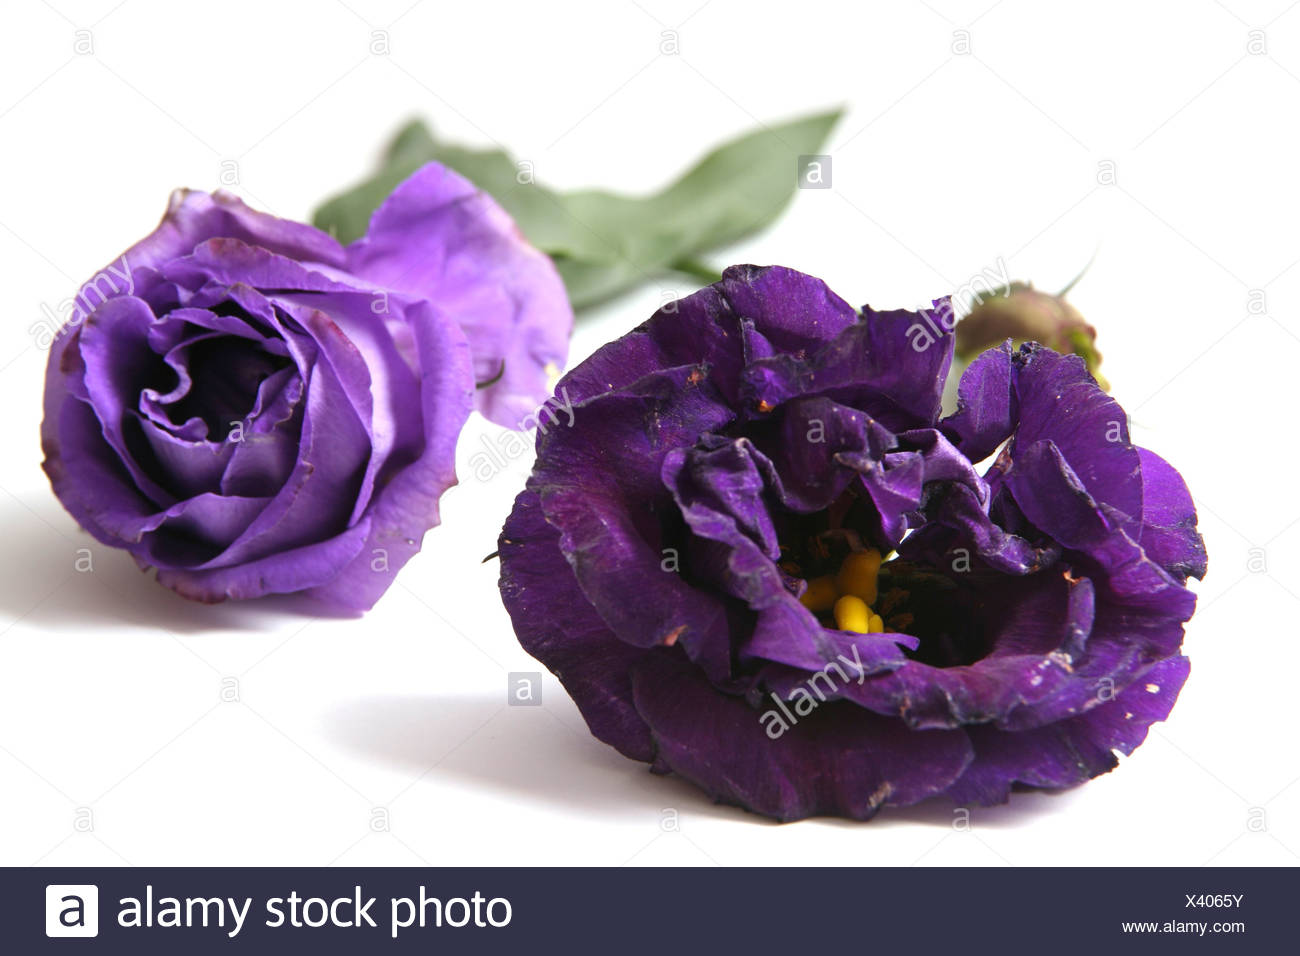 Cutout of a Purple rose on white background - Stock Image